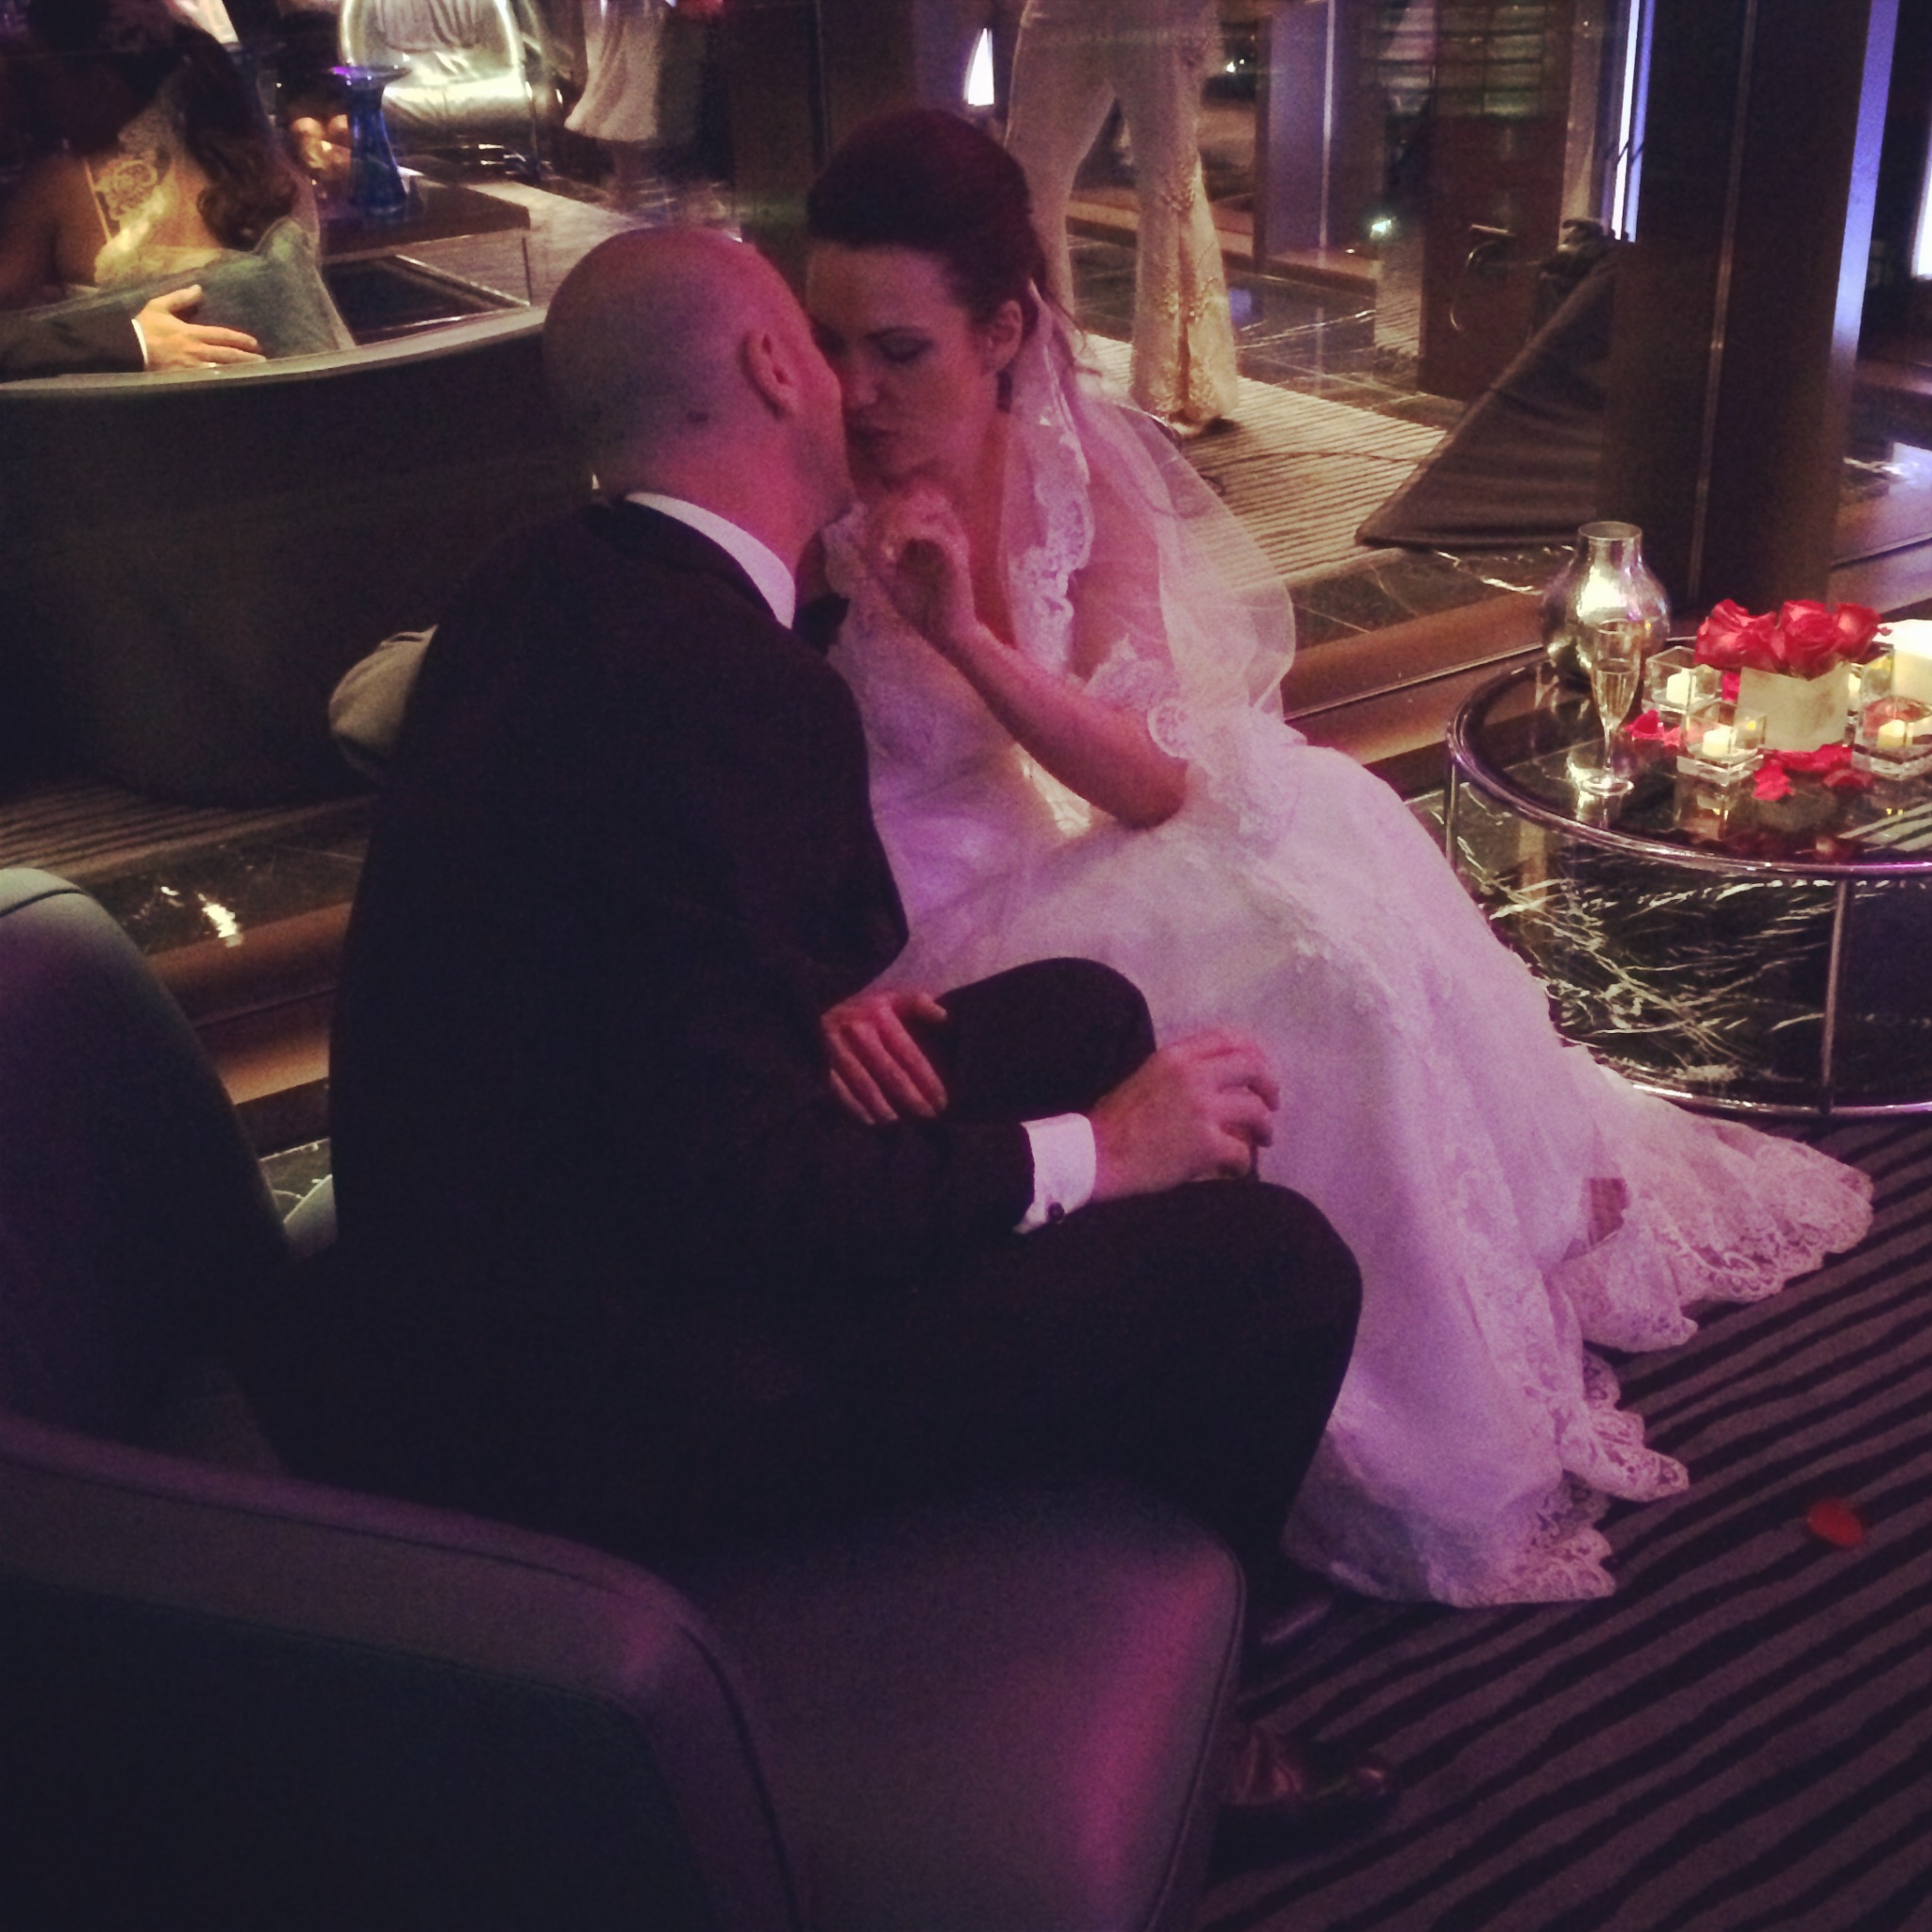 Bridget & Adam stole a moment alone while Elvis performed at their wedding in the One80 Suite at Red Rock Casino.